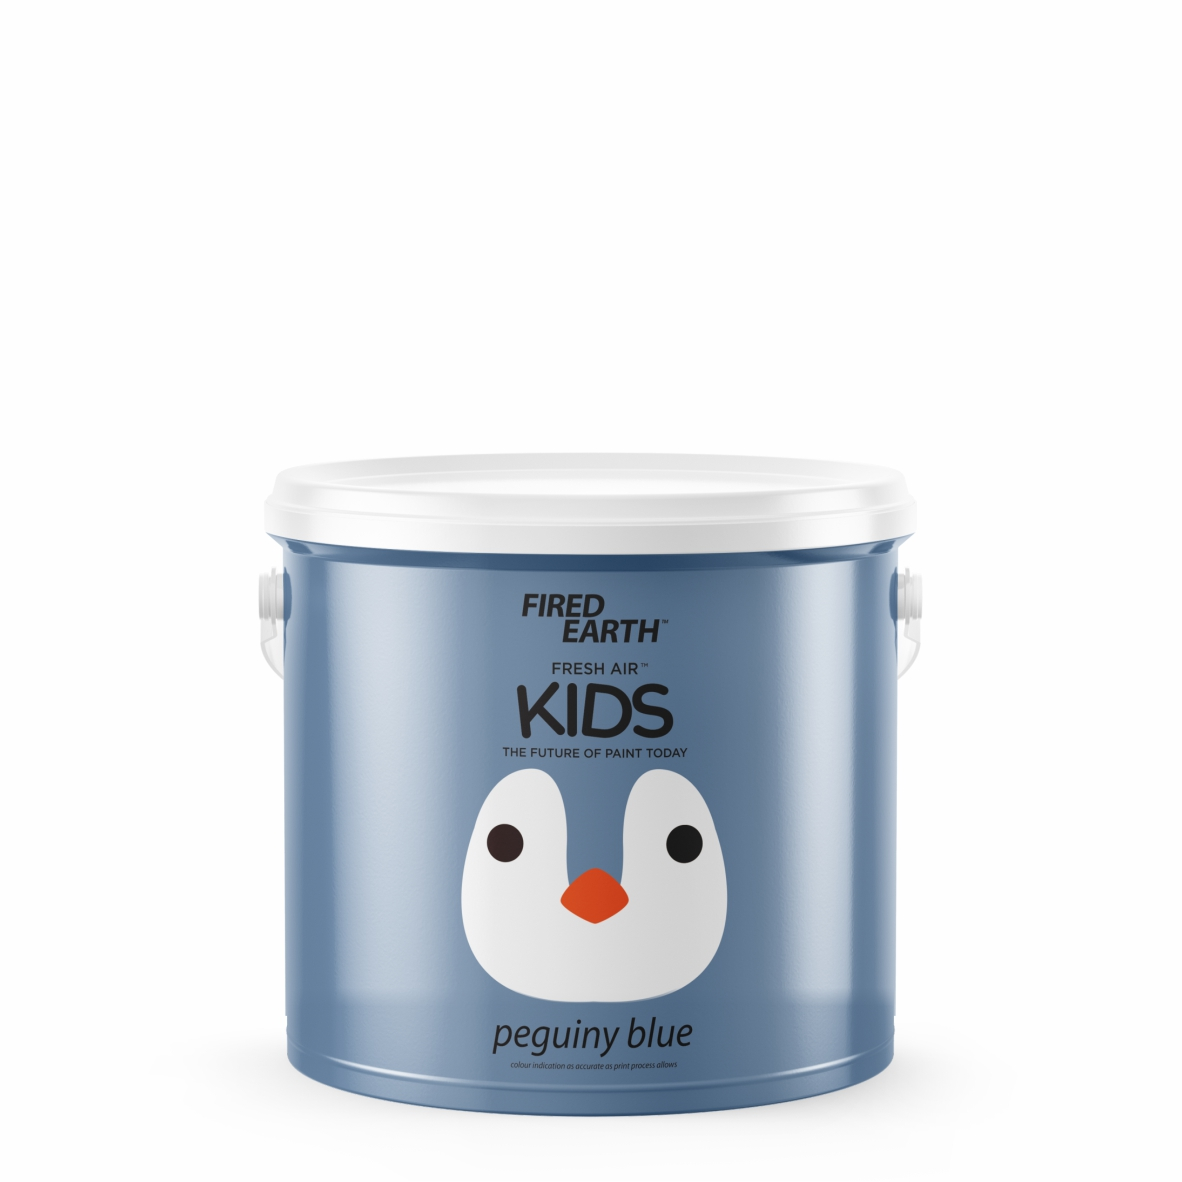 FE Fresh Air Kids penguiny blue.jpg